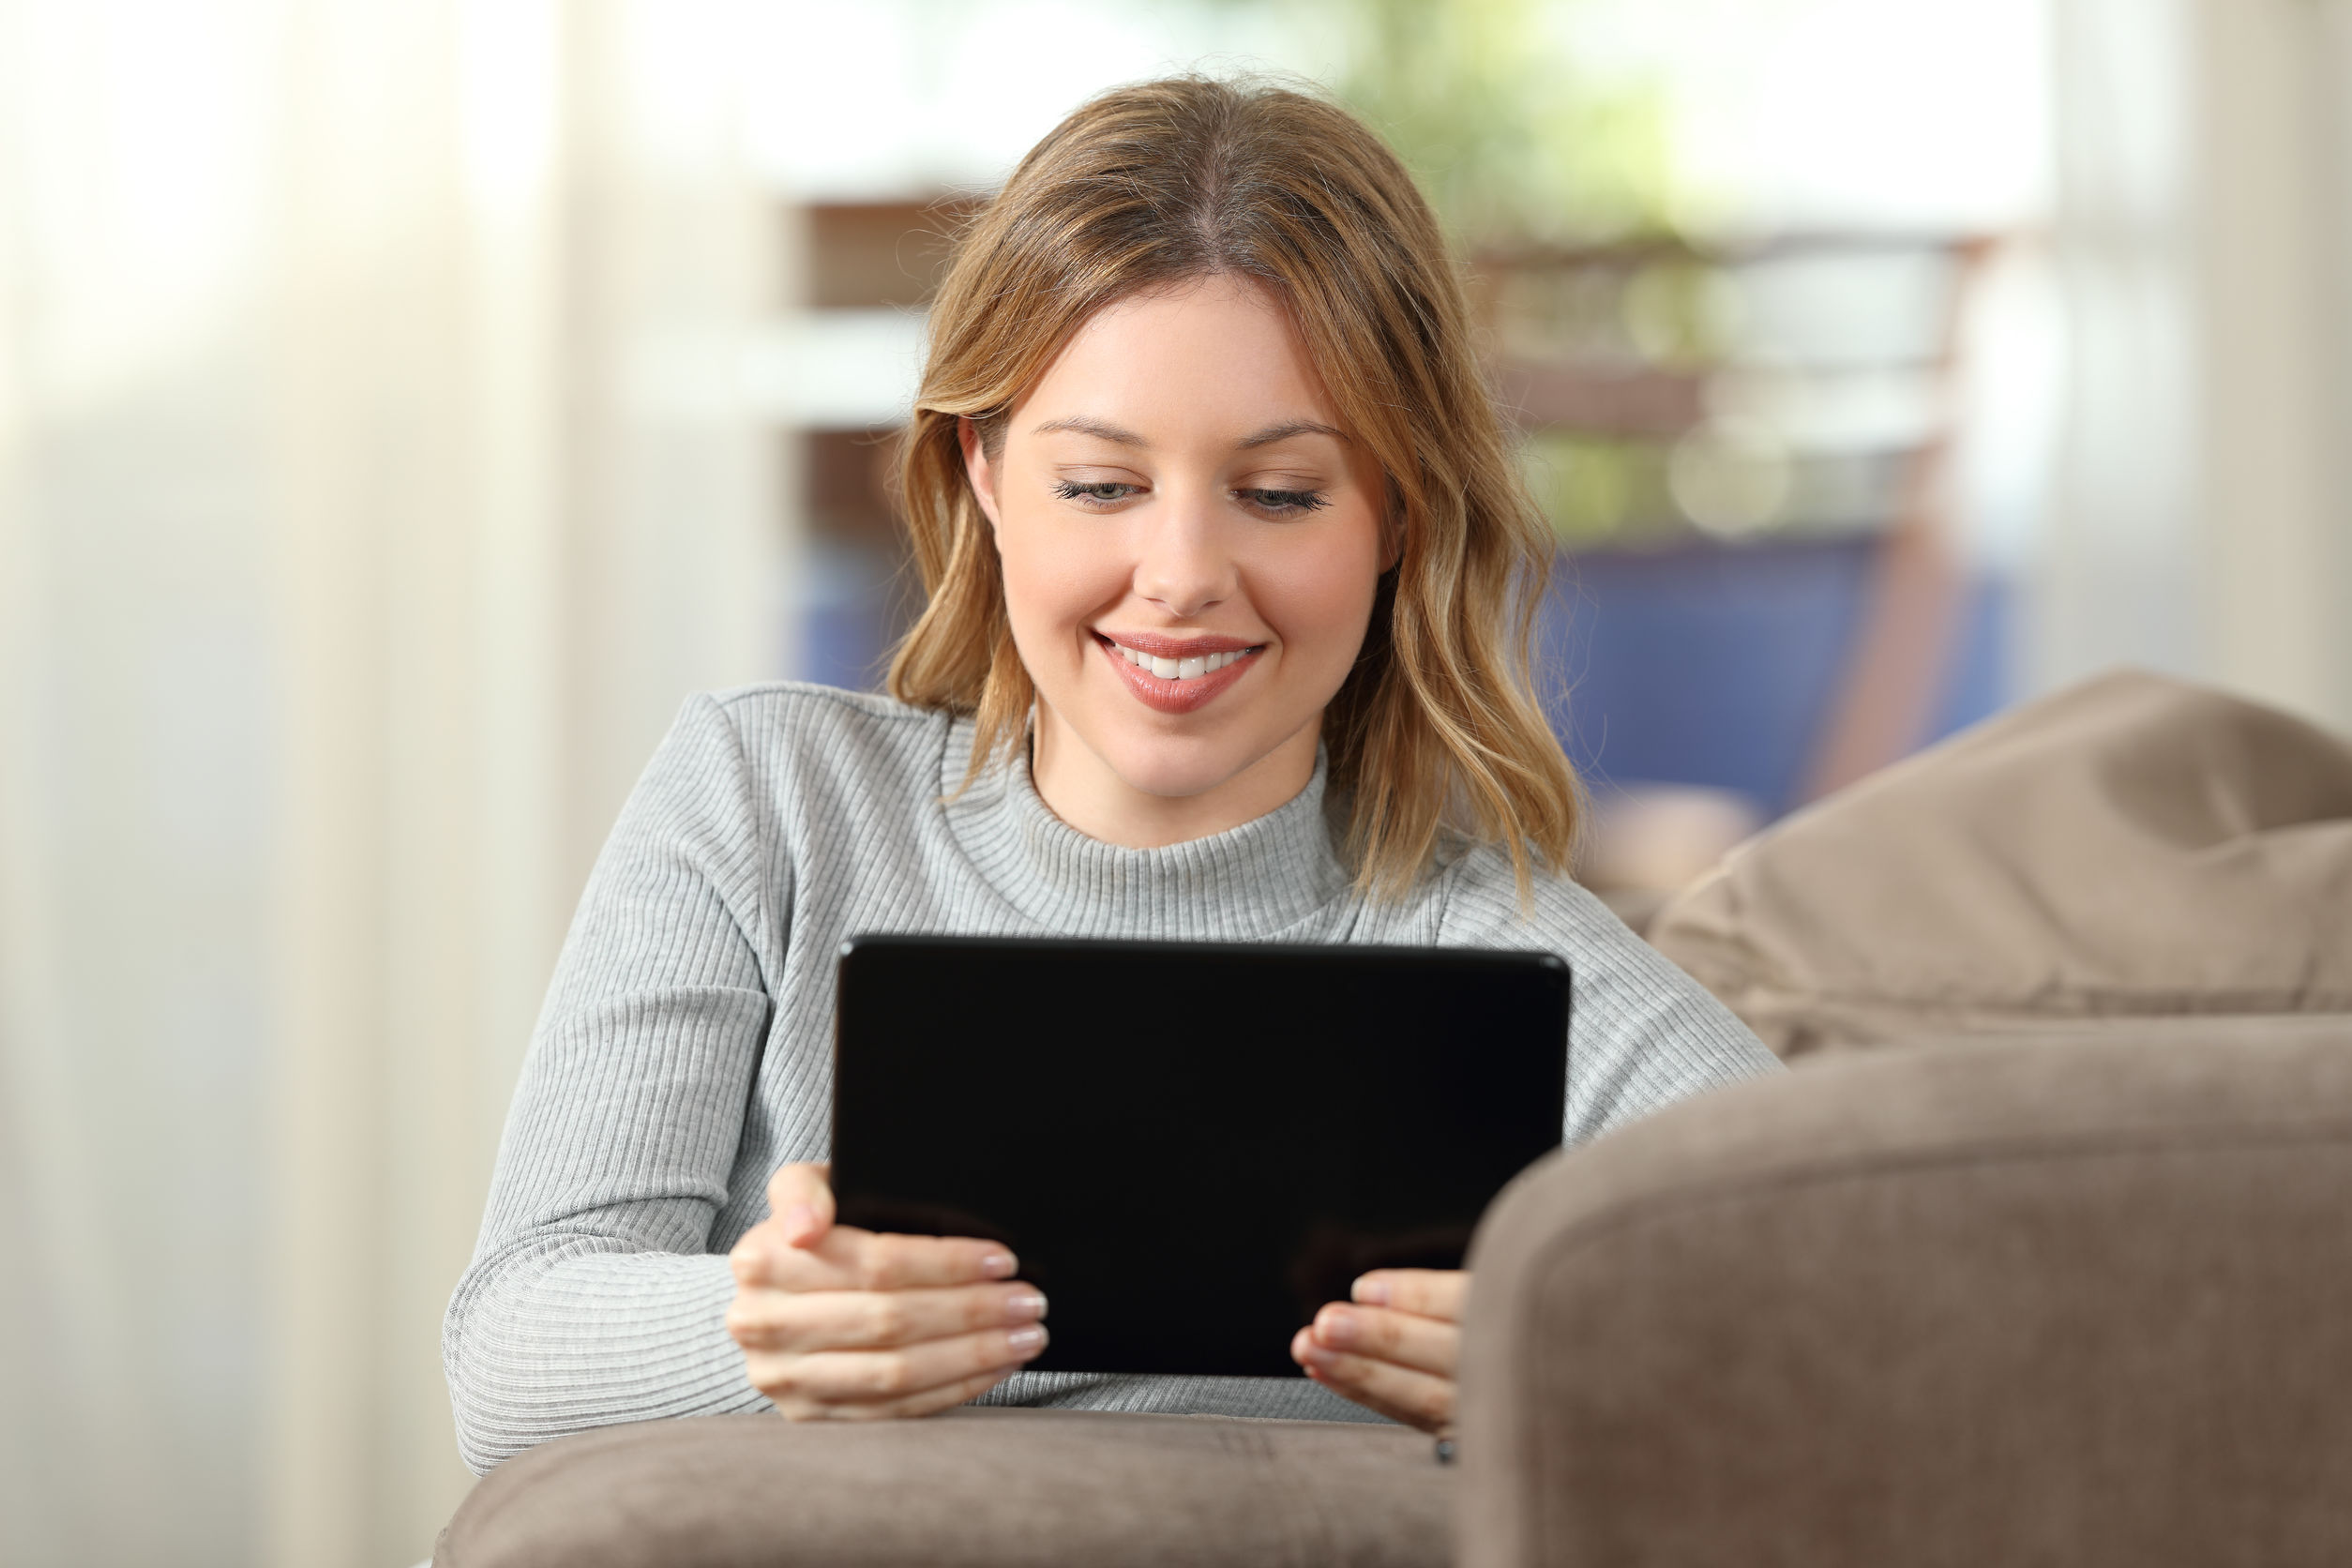 Front view of a woman watching video in a tablet sitting on a couch in the living room at home